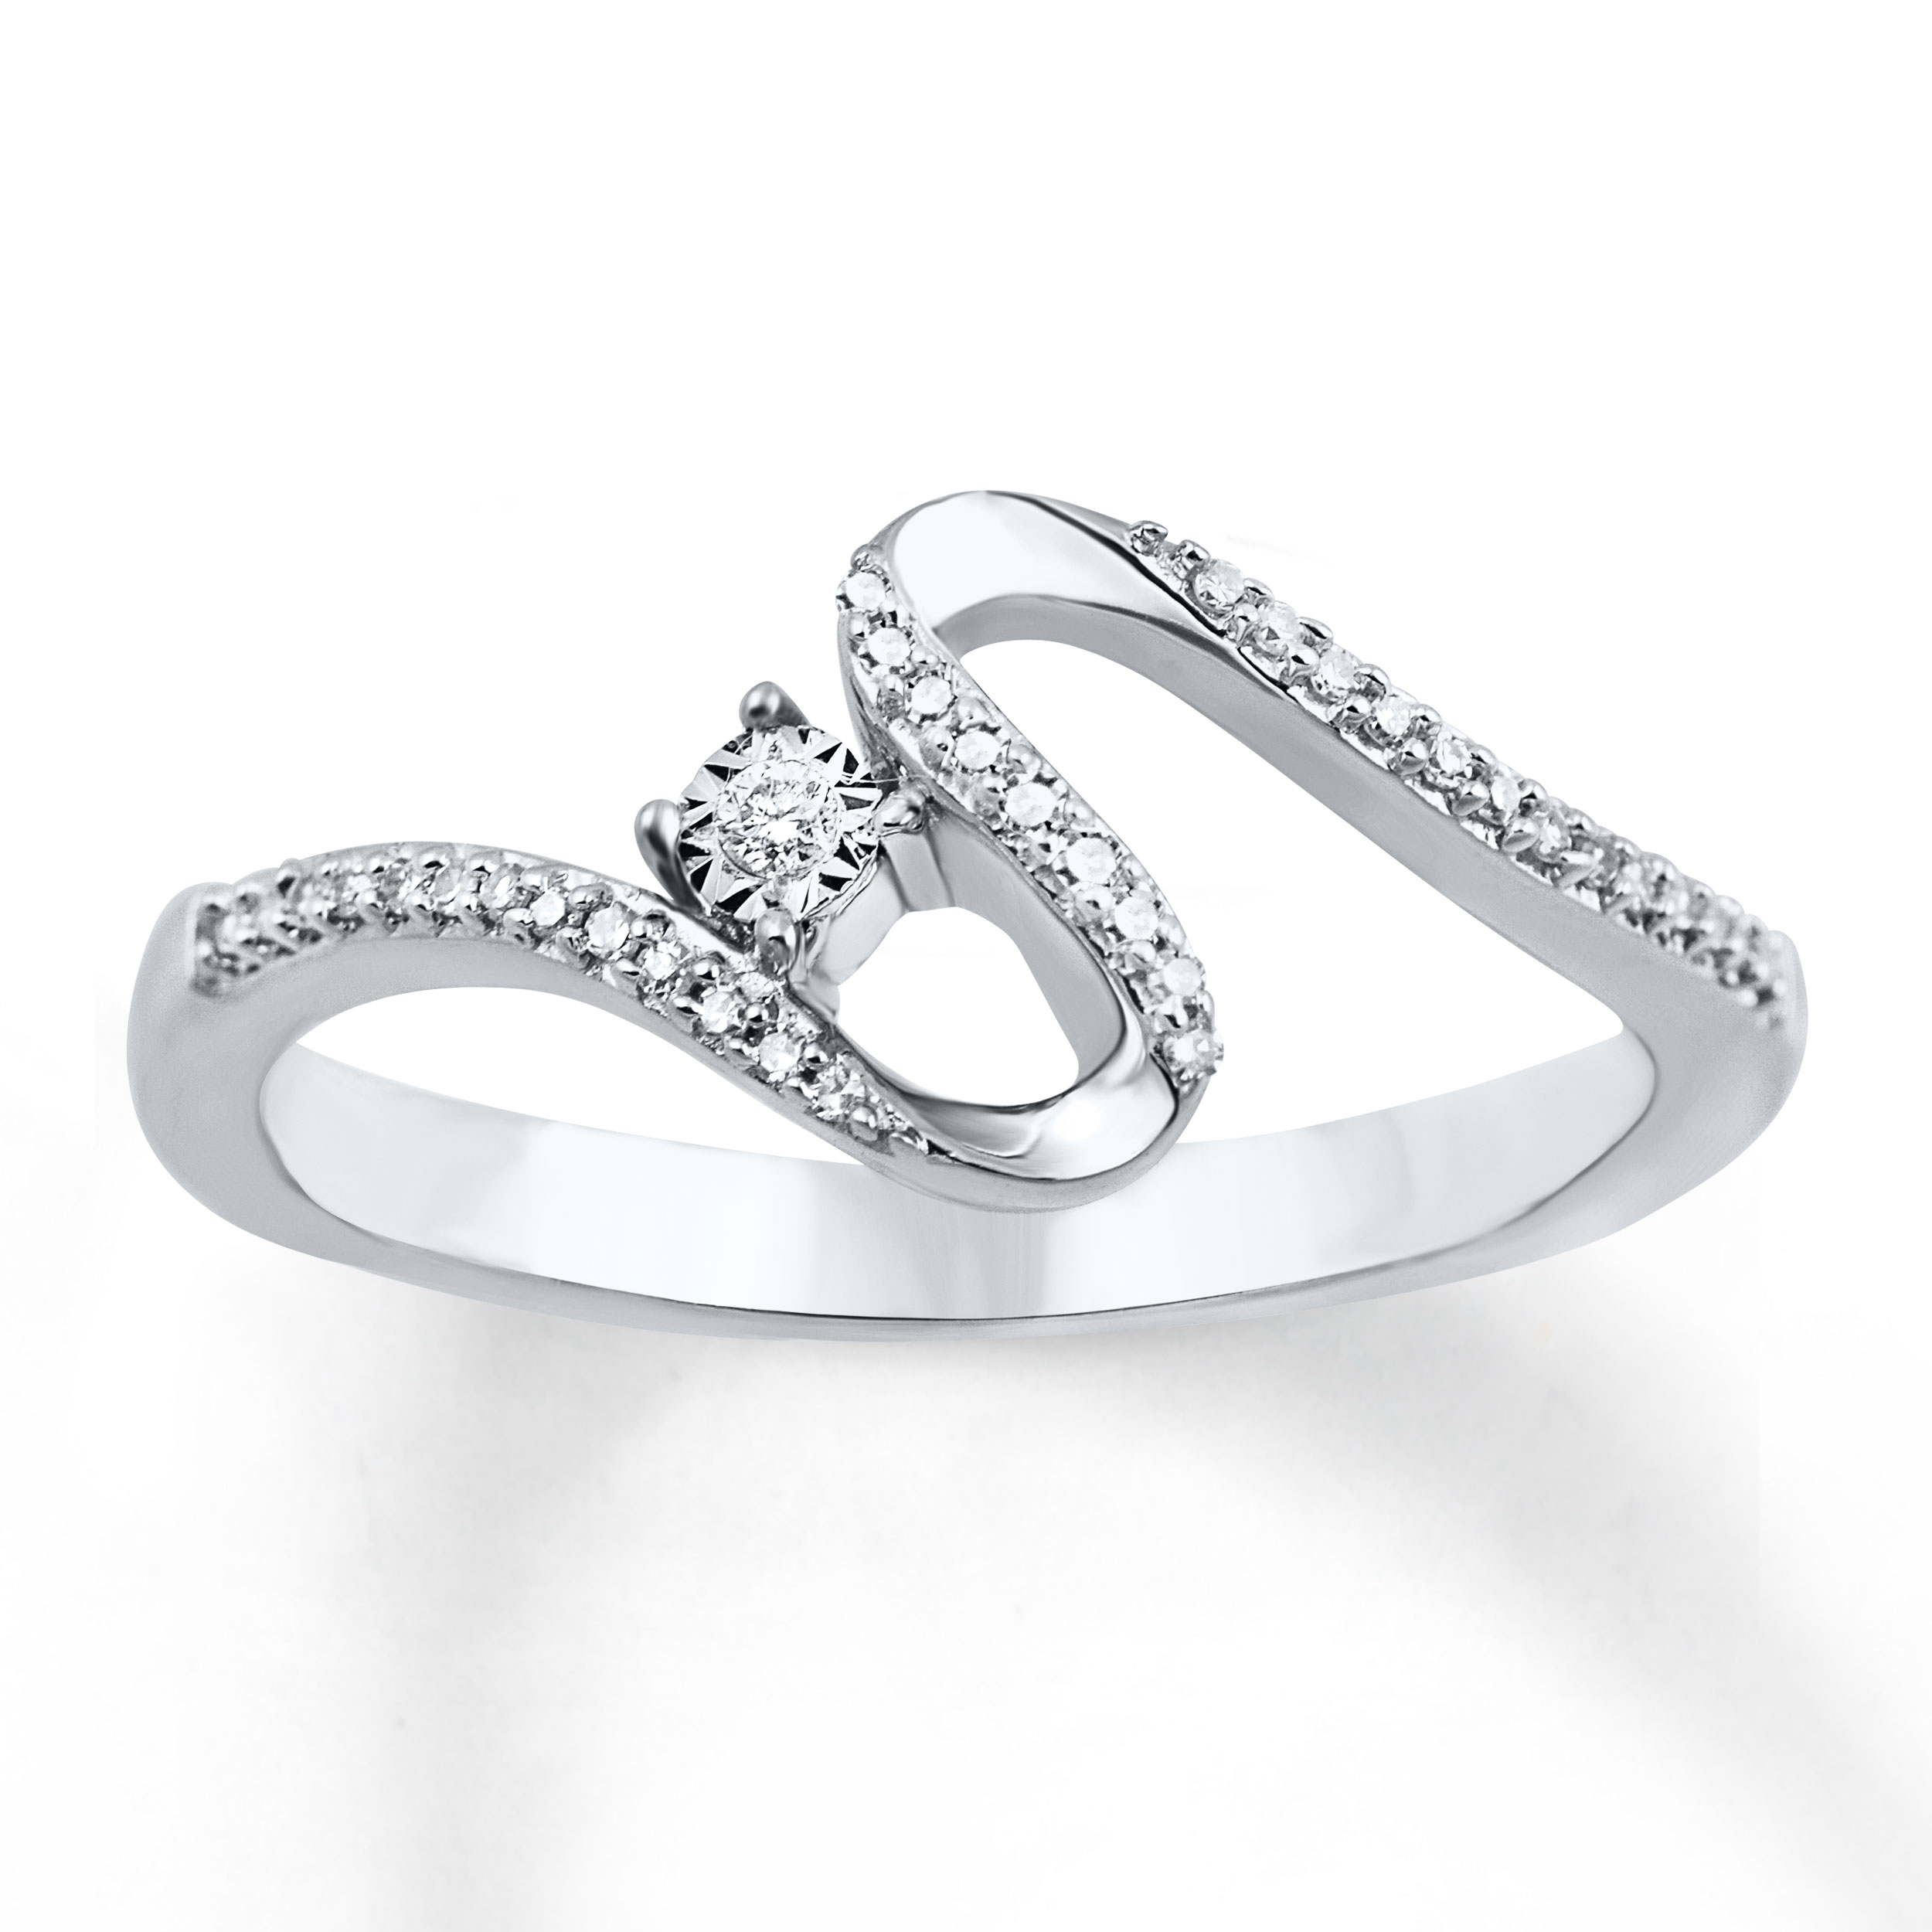 Open Hearts Road Ahead Ring 1/10 ct tw Diamonds Sterling Silver